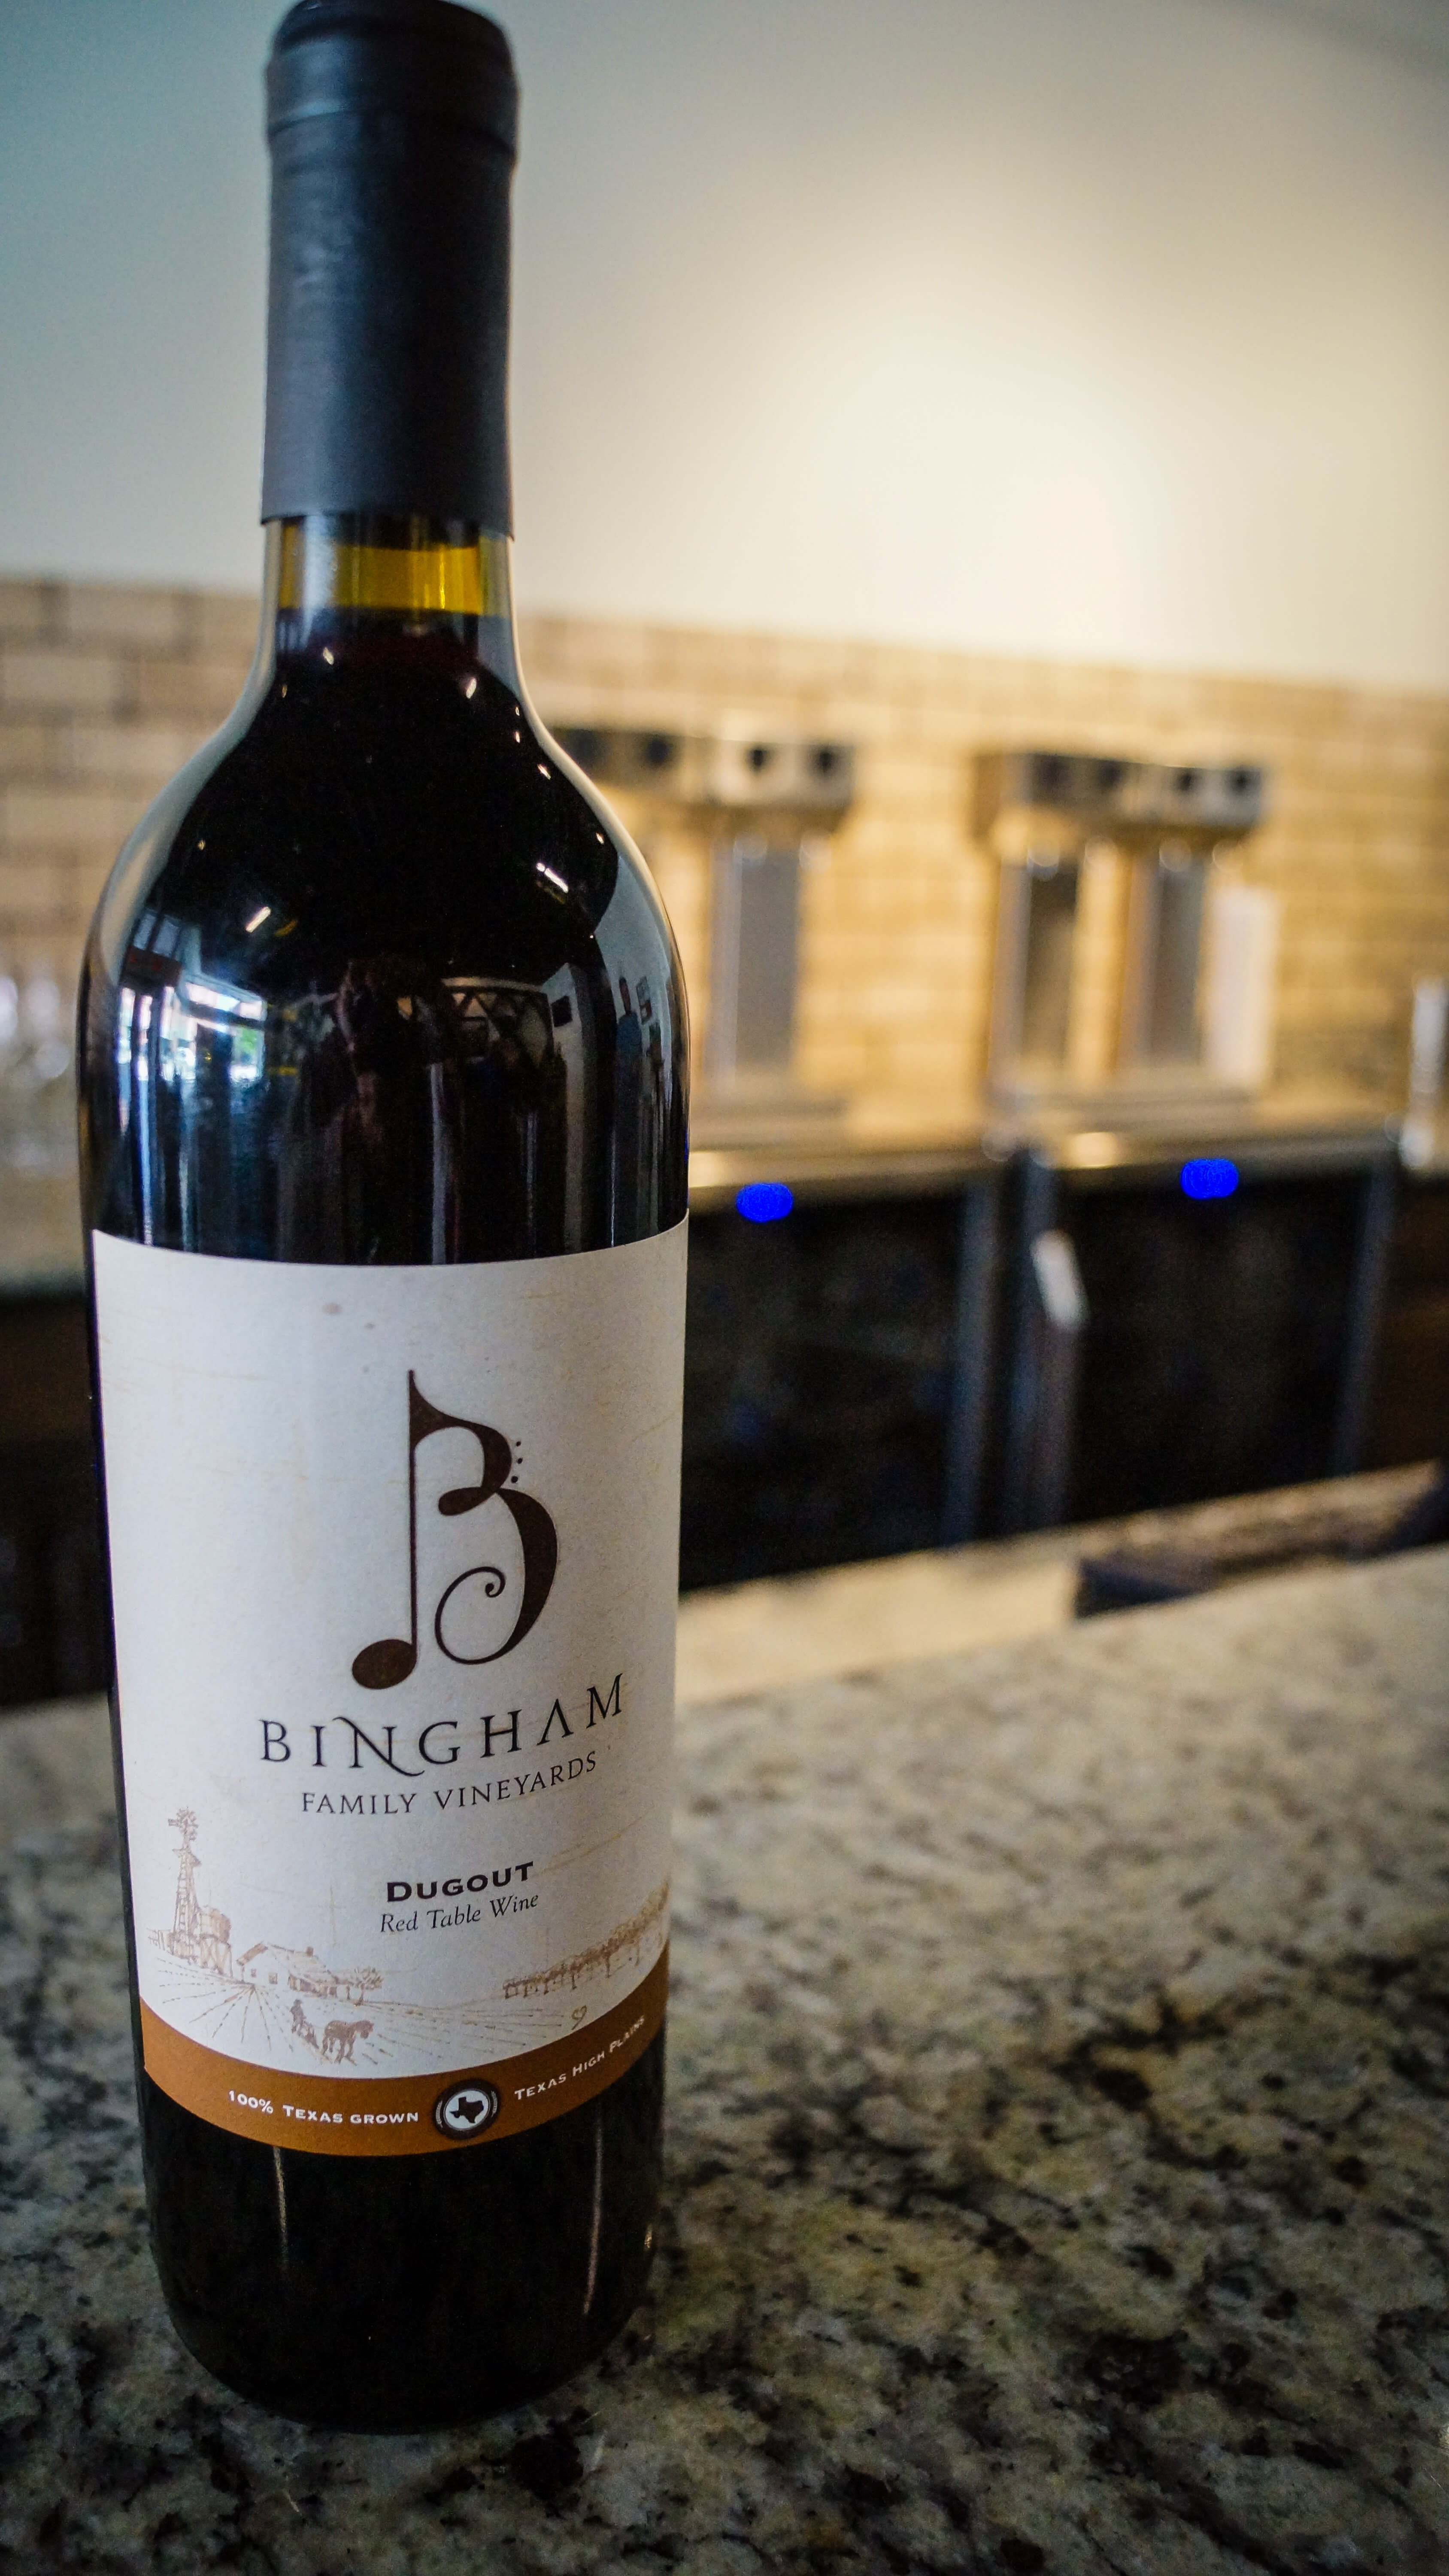 Dugout - Bingham Family Vineyards